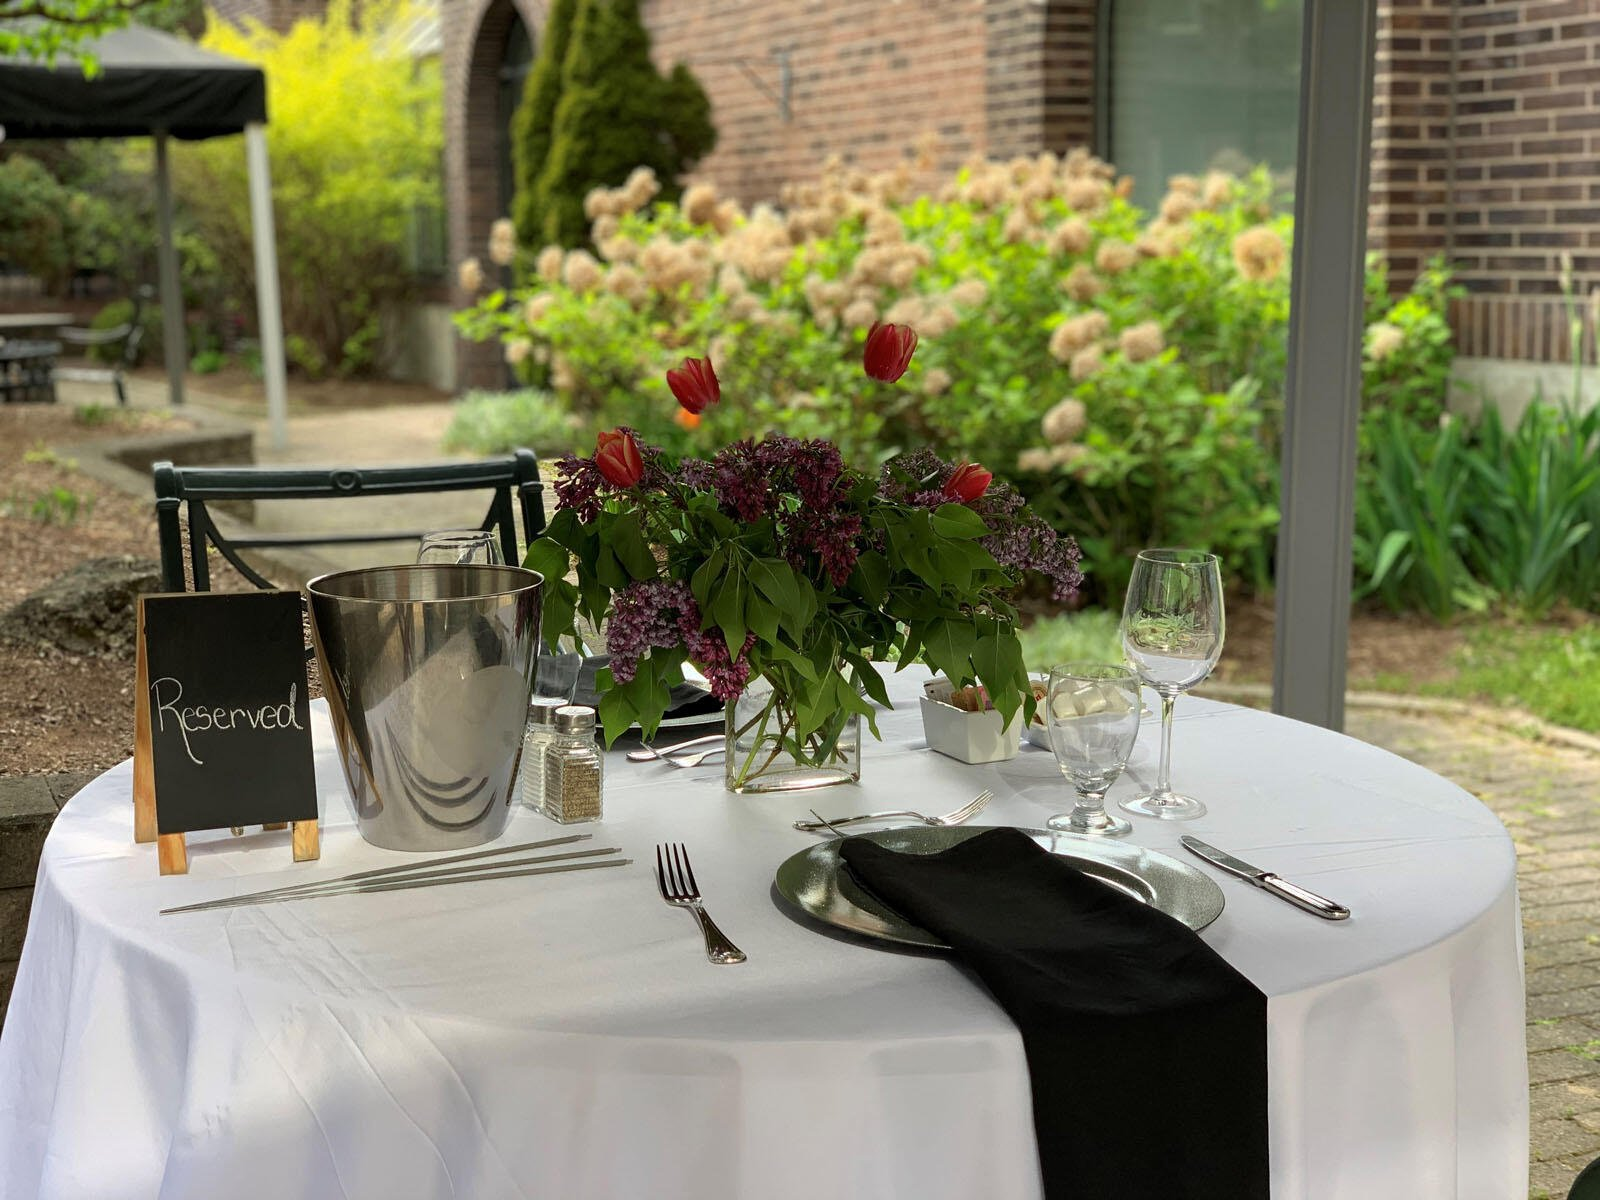 dining table in a garden with flowers at The Inn of Waterloo